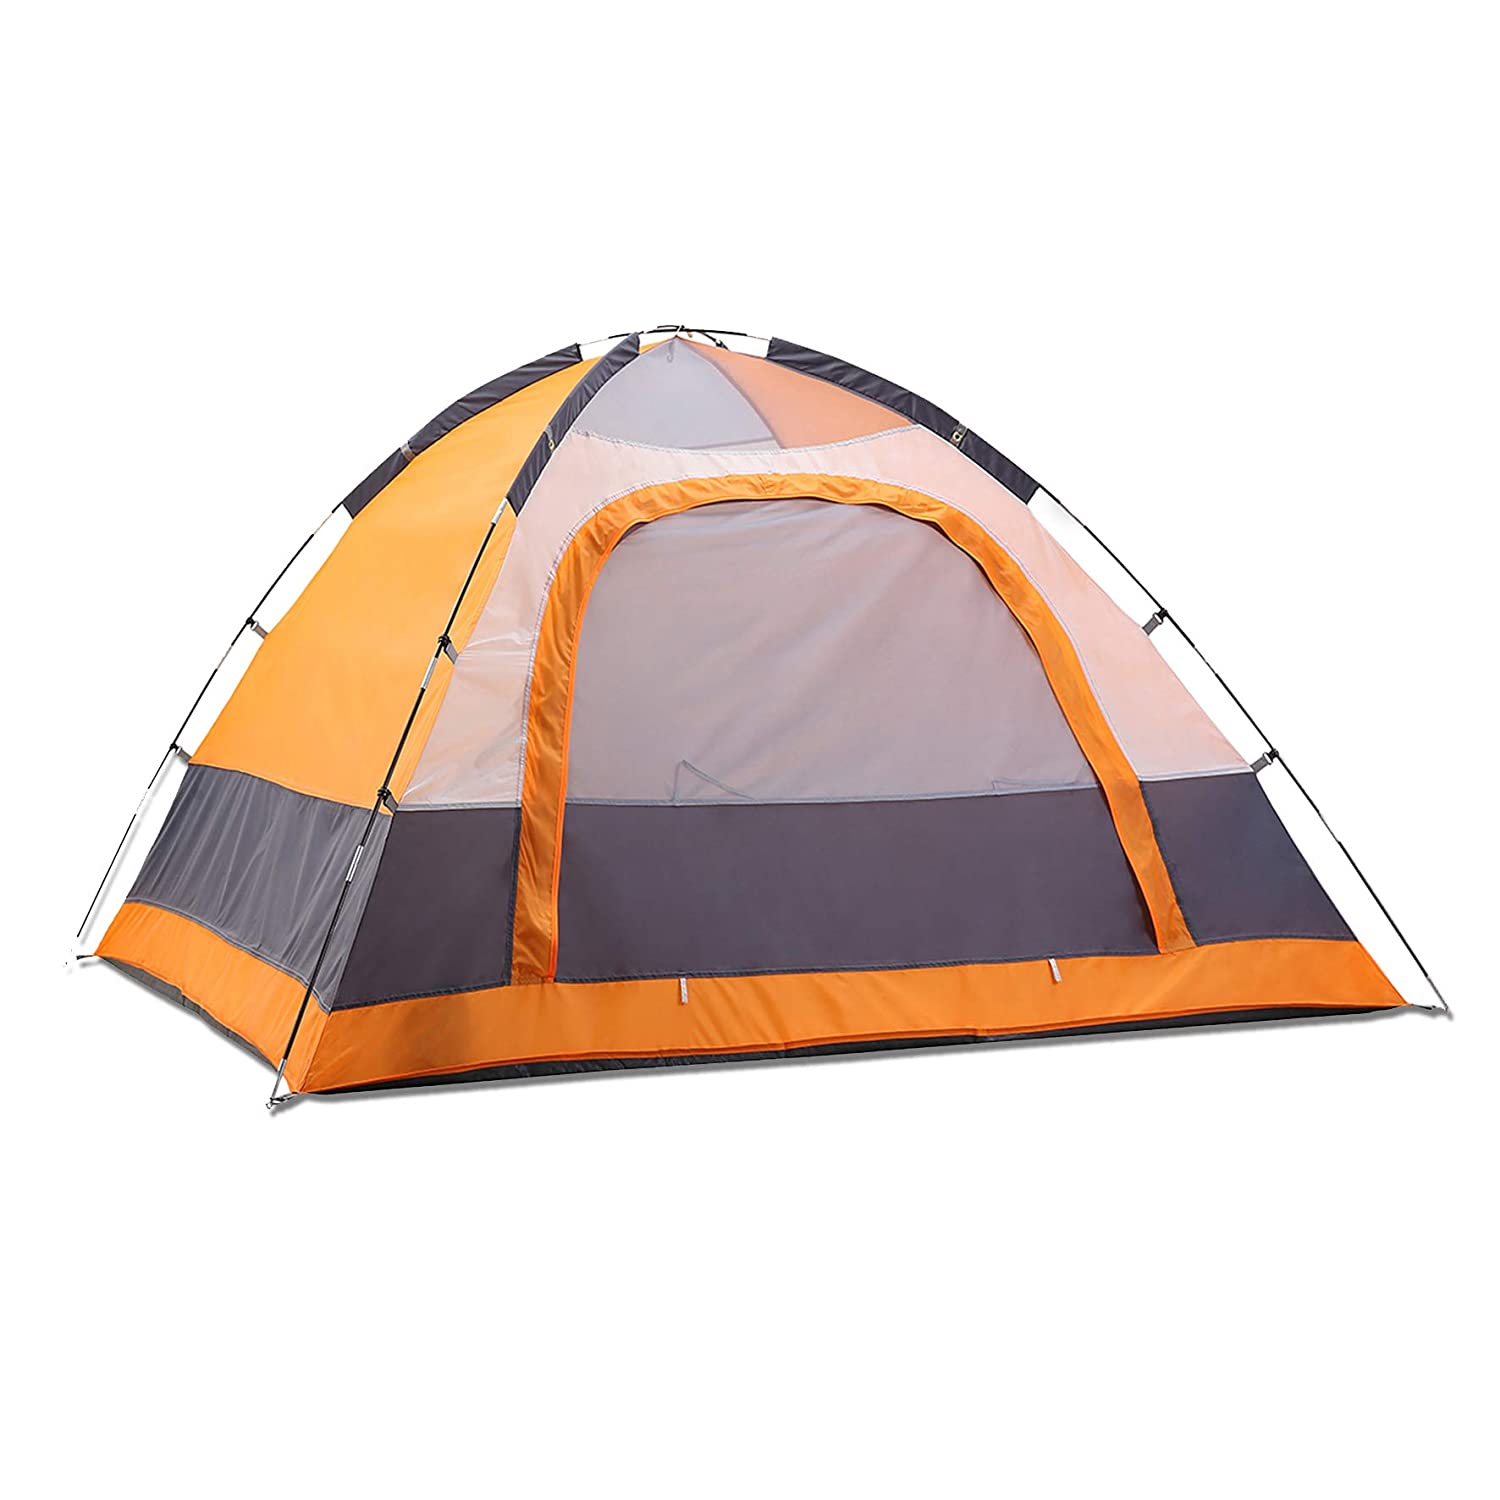 SEMOO Camping Tent Water Resistant 2-3 Person Lightweight with Carry Bag